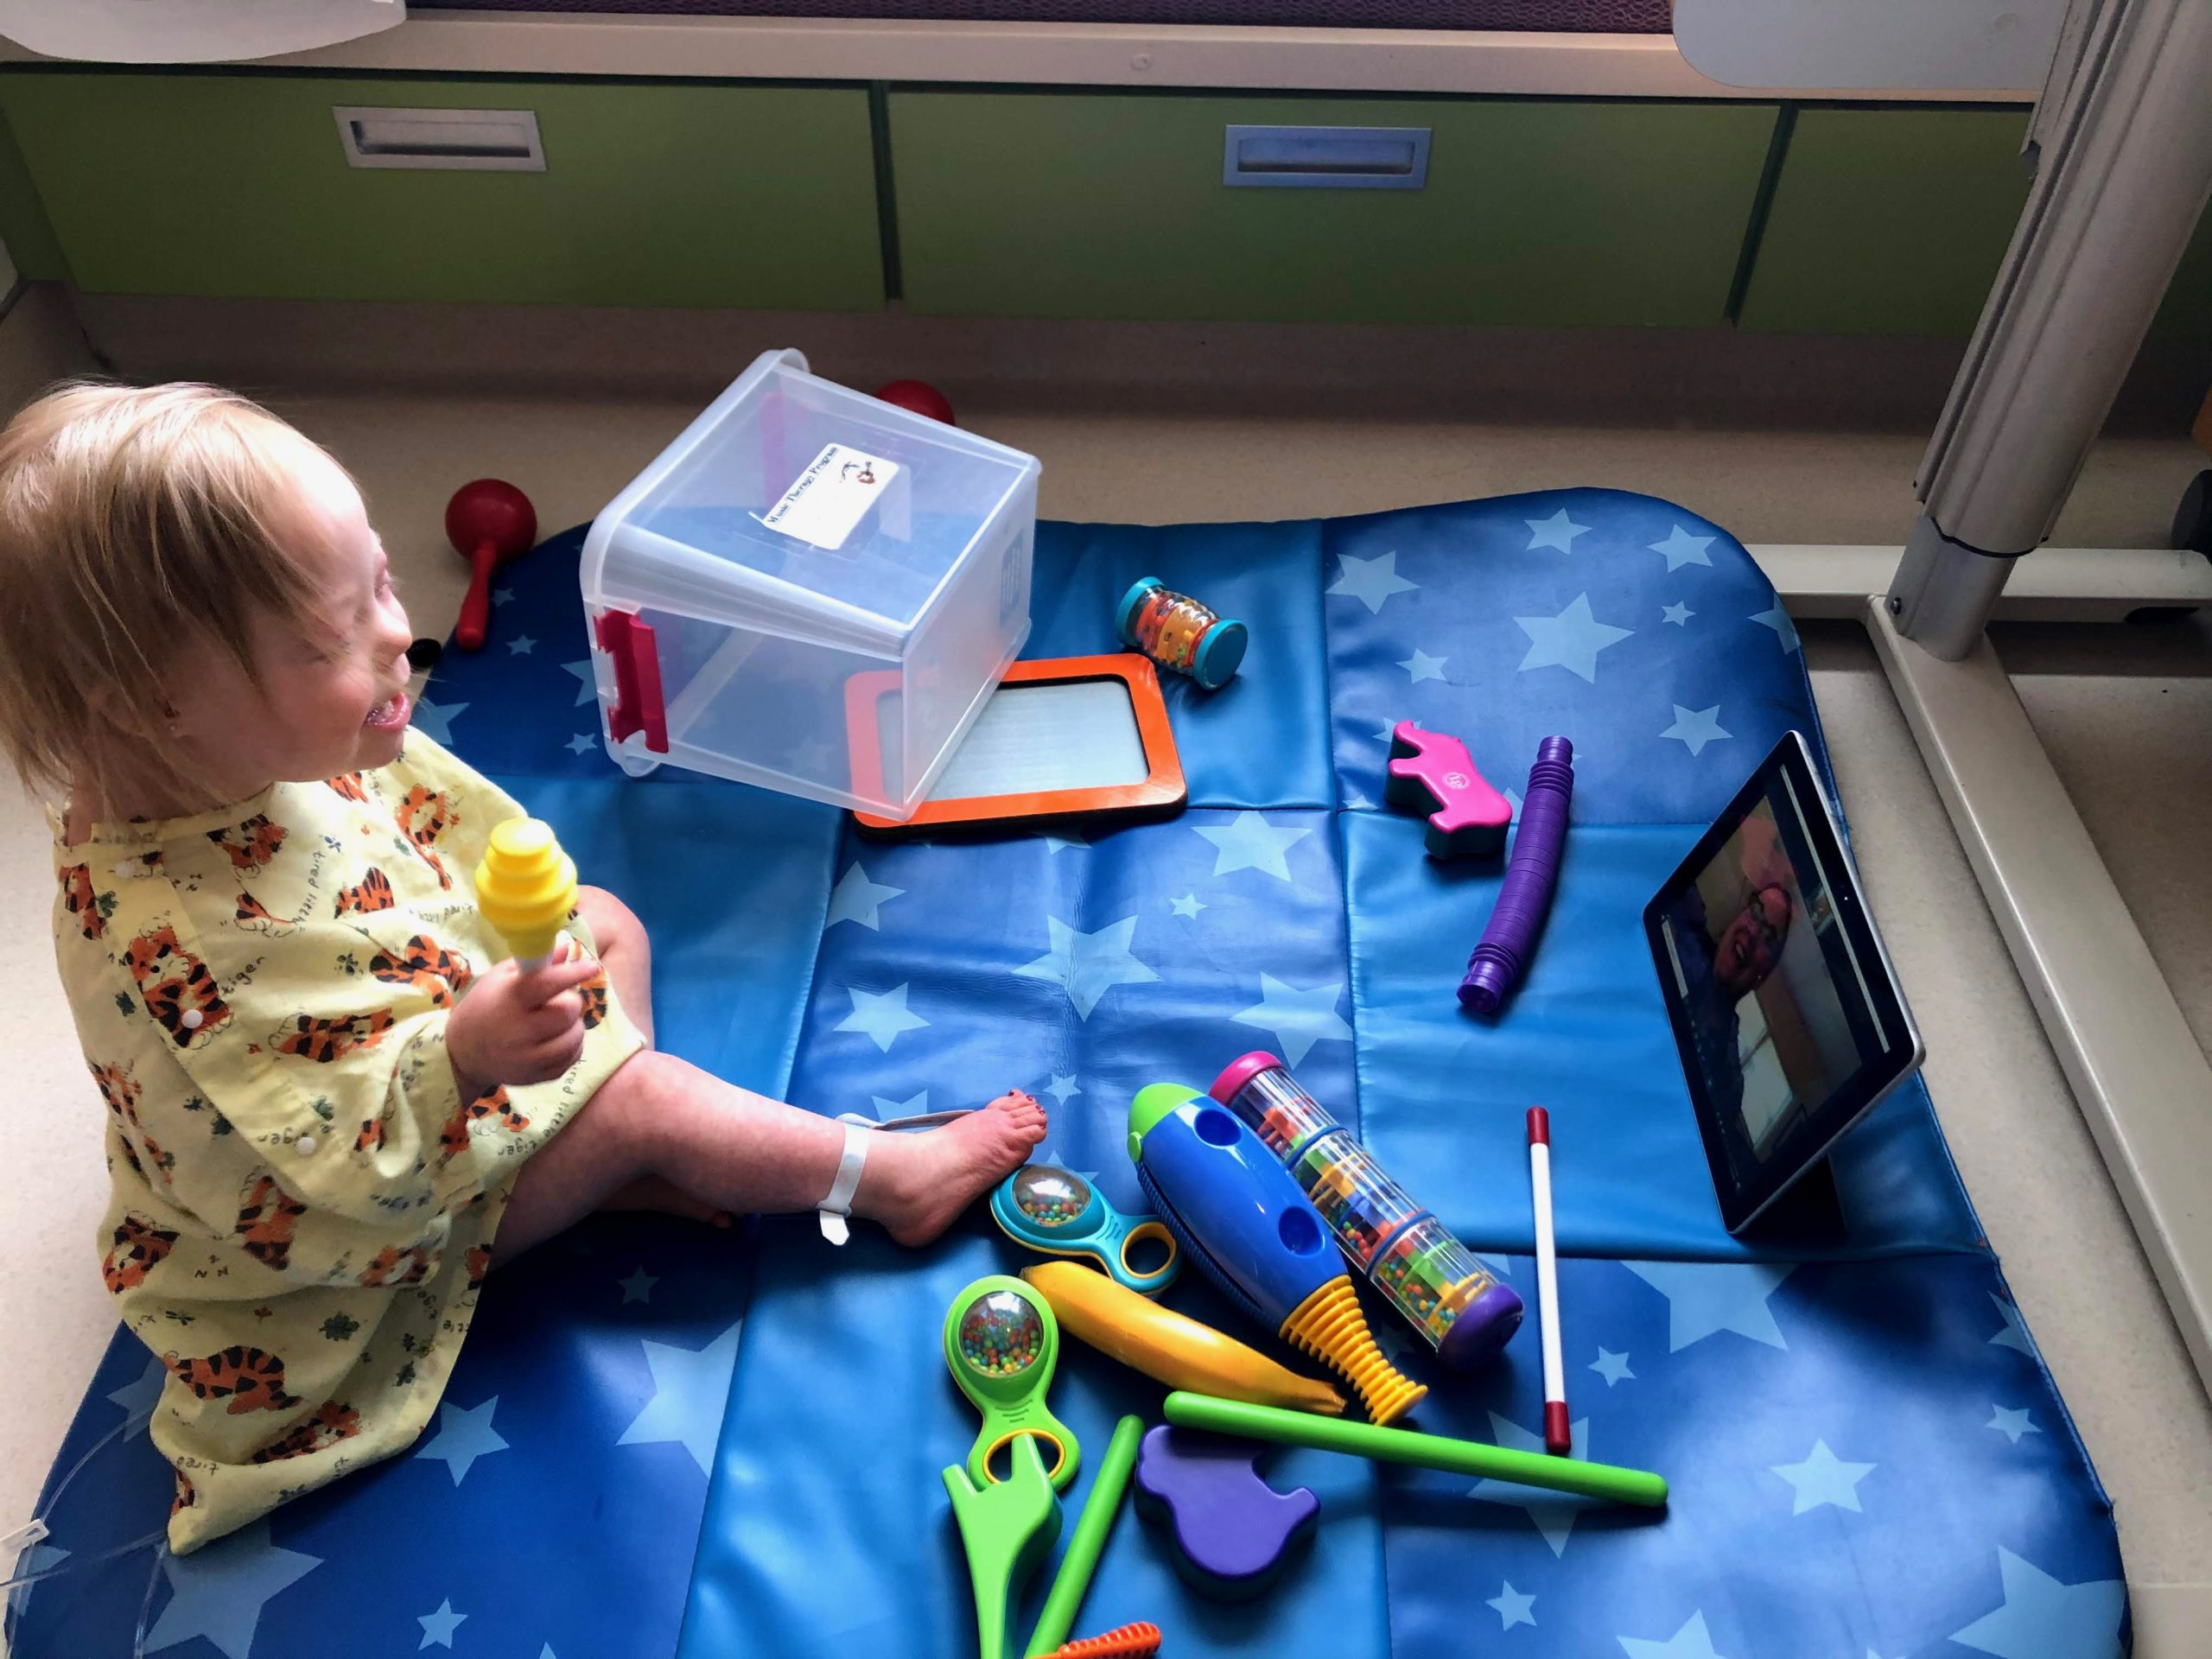 Jorie Pucillo participates in music therapy with Rosie Obi via Zoom during the early days of the COVID-19 pandemic.